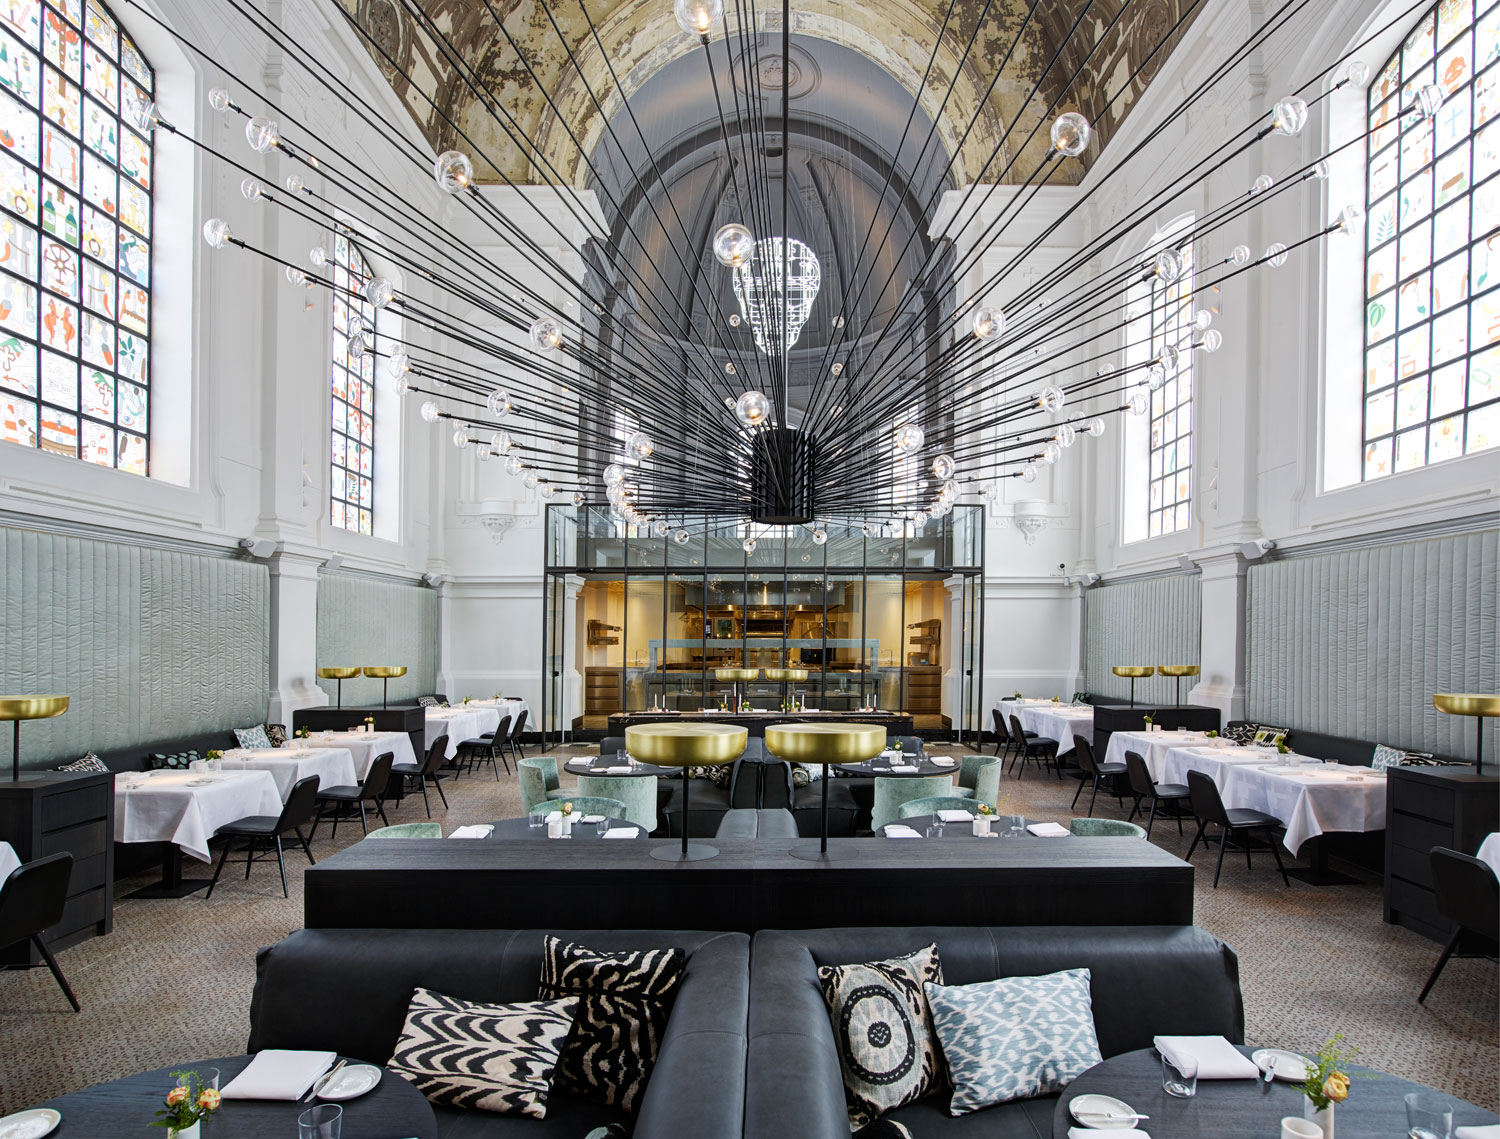 The jane antwerp divine fine dining by piet boon for The restaurant